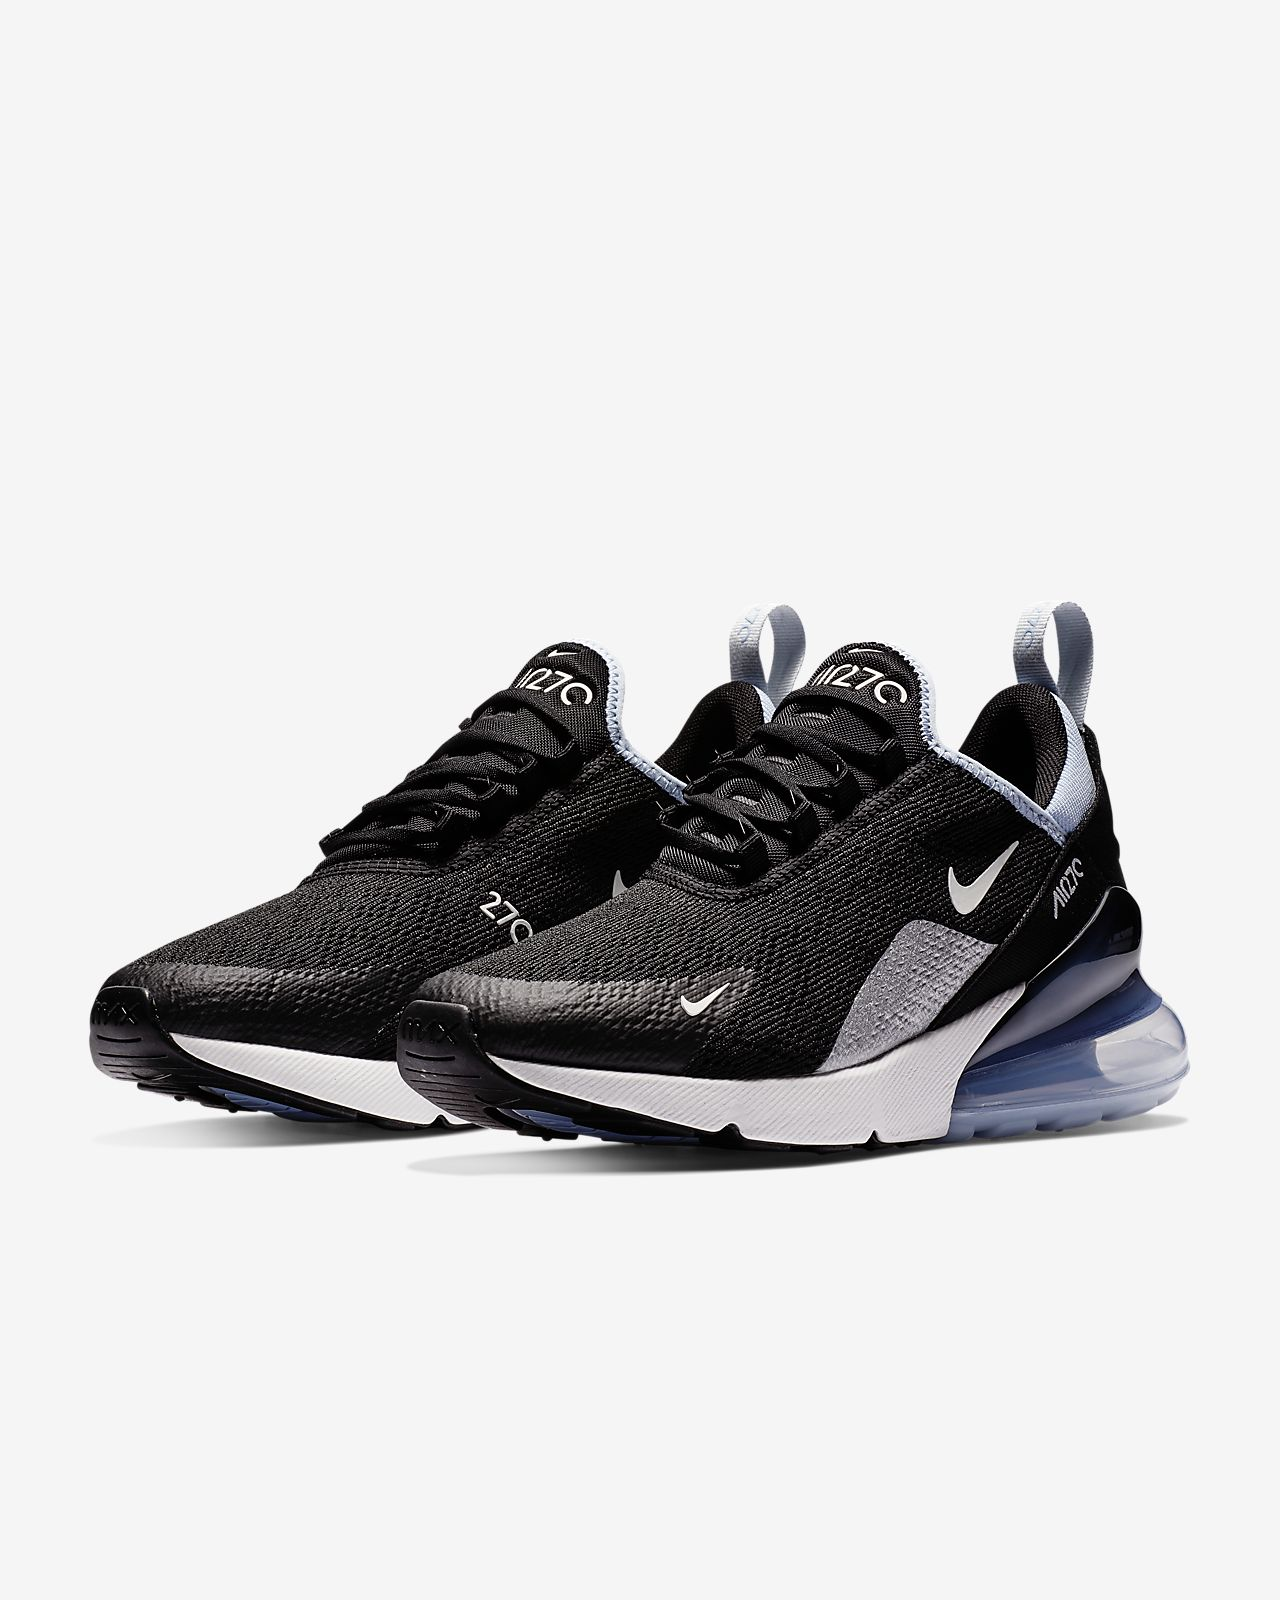 hot sale online 98dc4 a71fa nike air max 270 womens running shoes Nike Air Max 270 Women s Shoe.